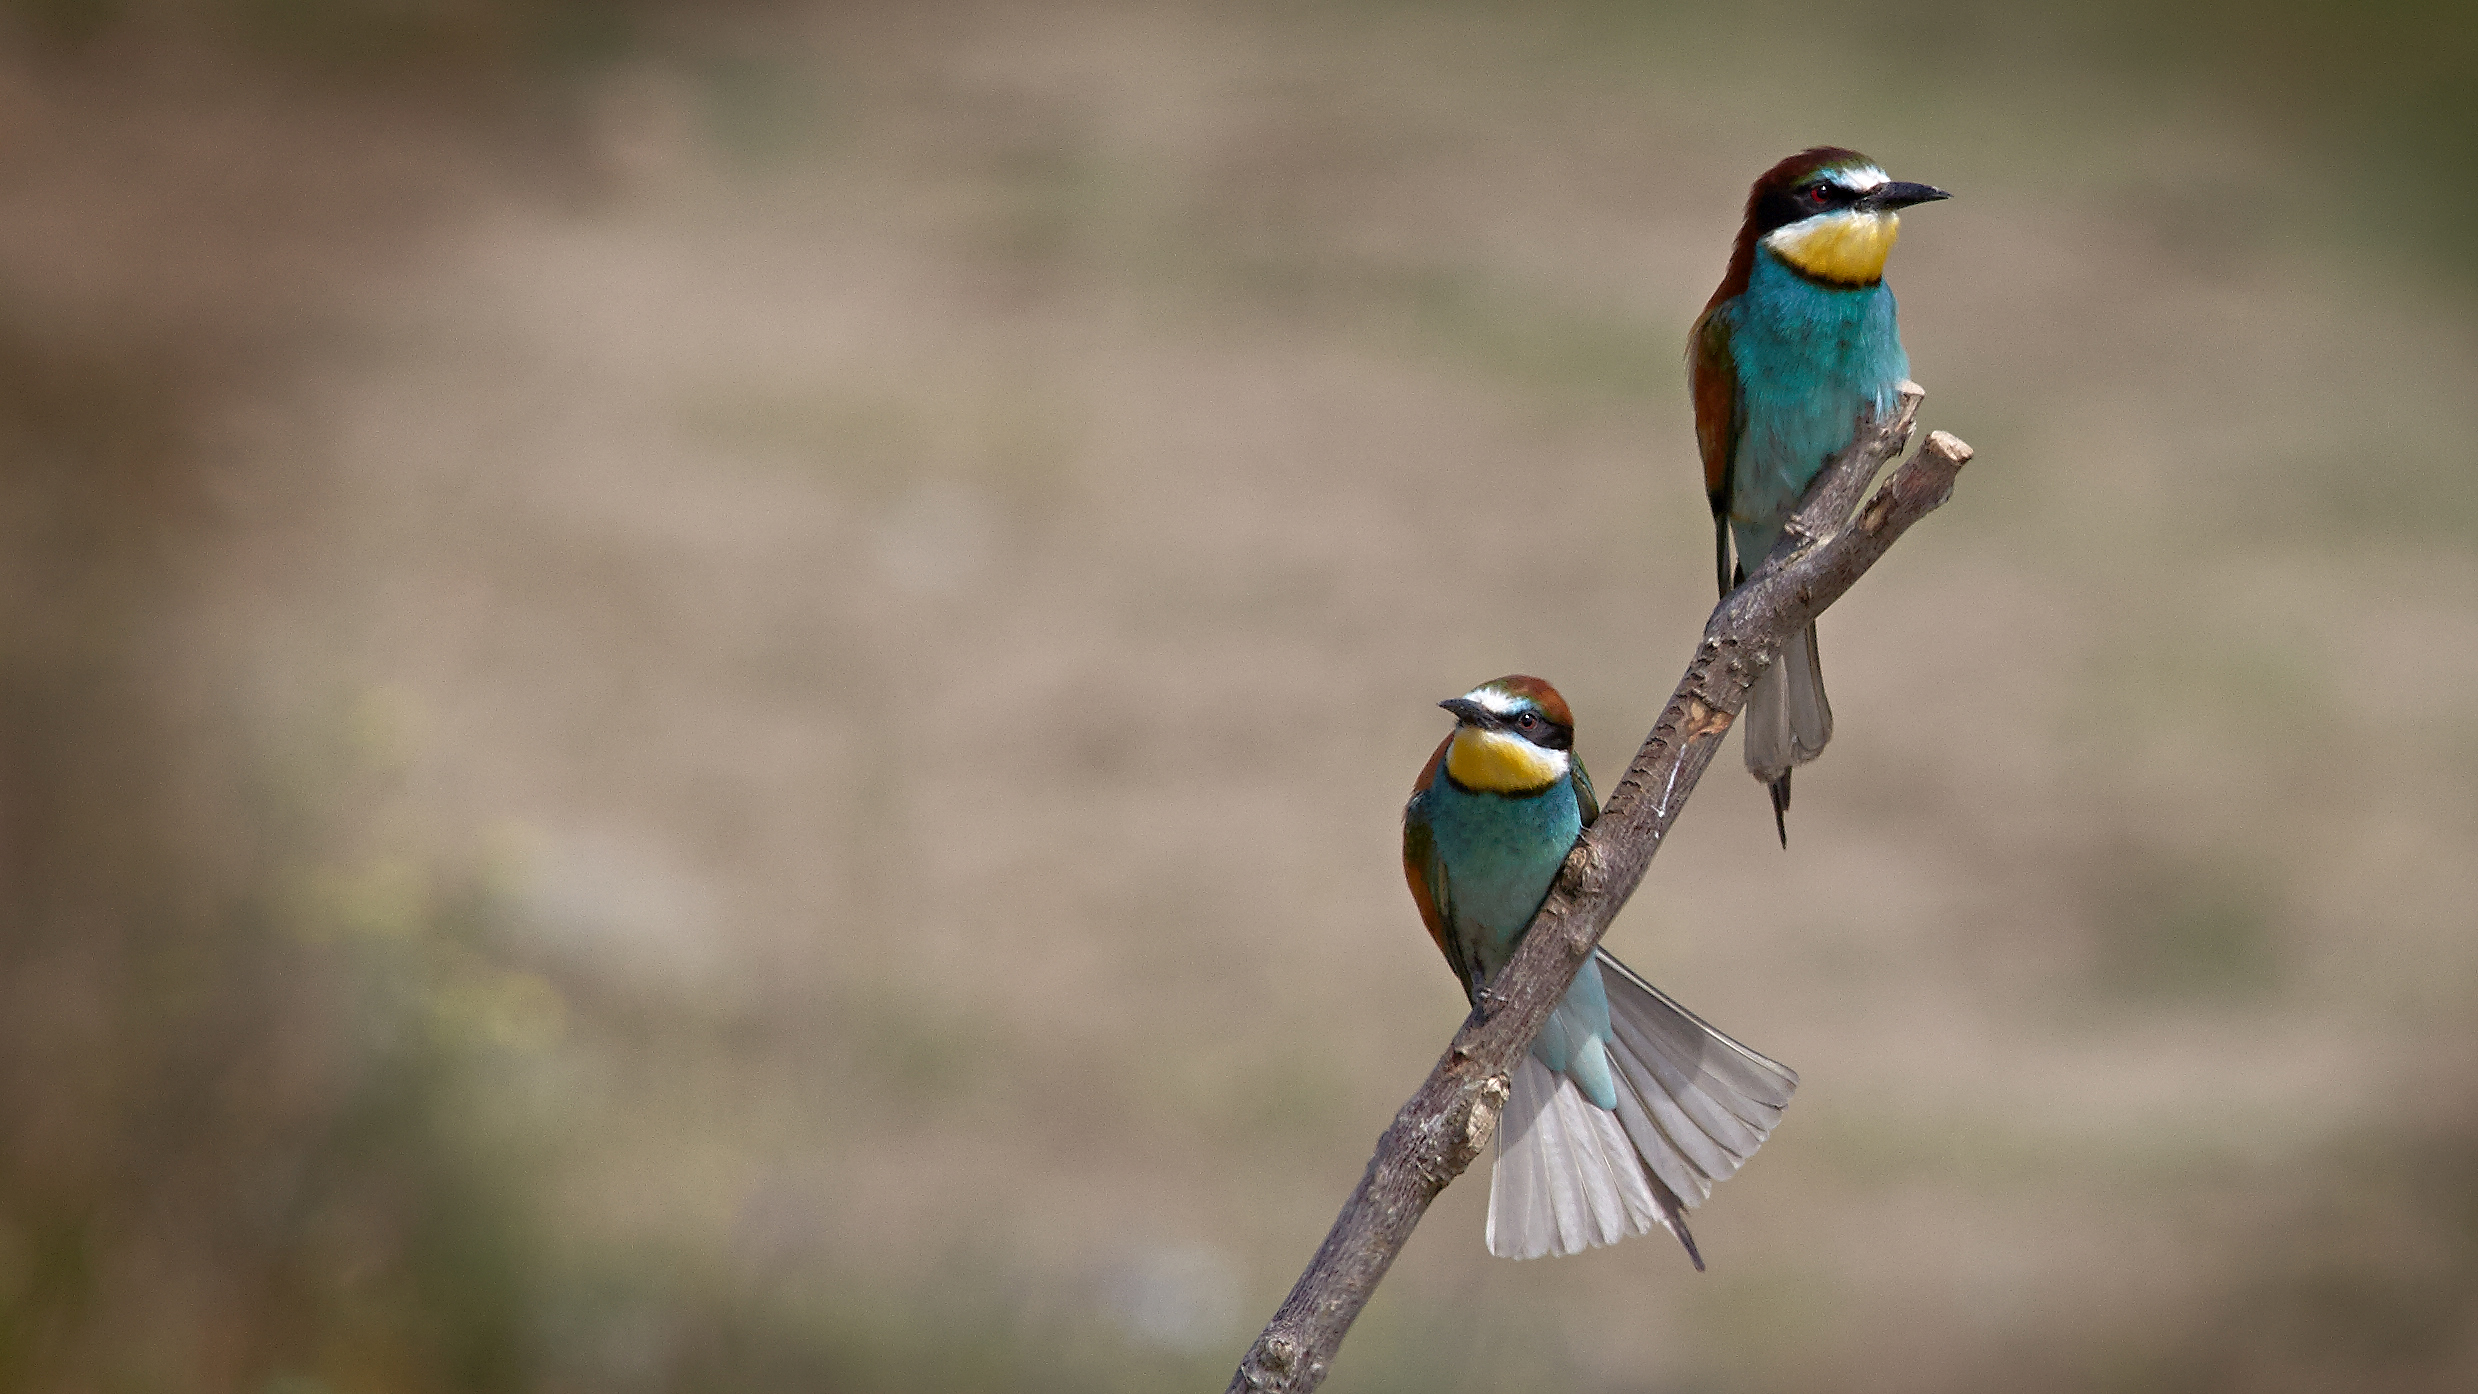 bee-eaters photographed during one of our summer bird & wildlife photography workshops & tours of Lake Kerkini